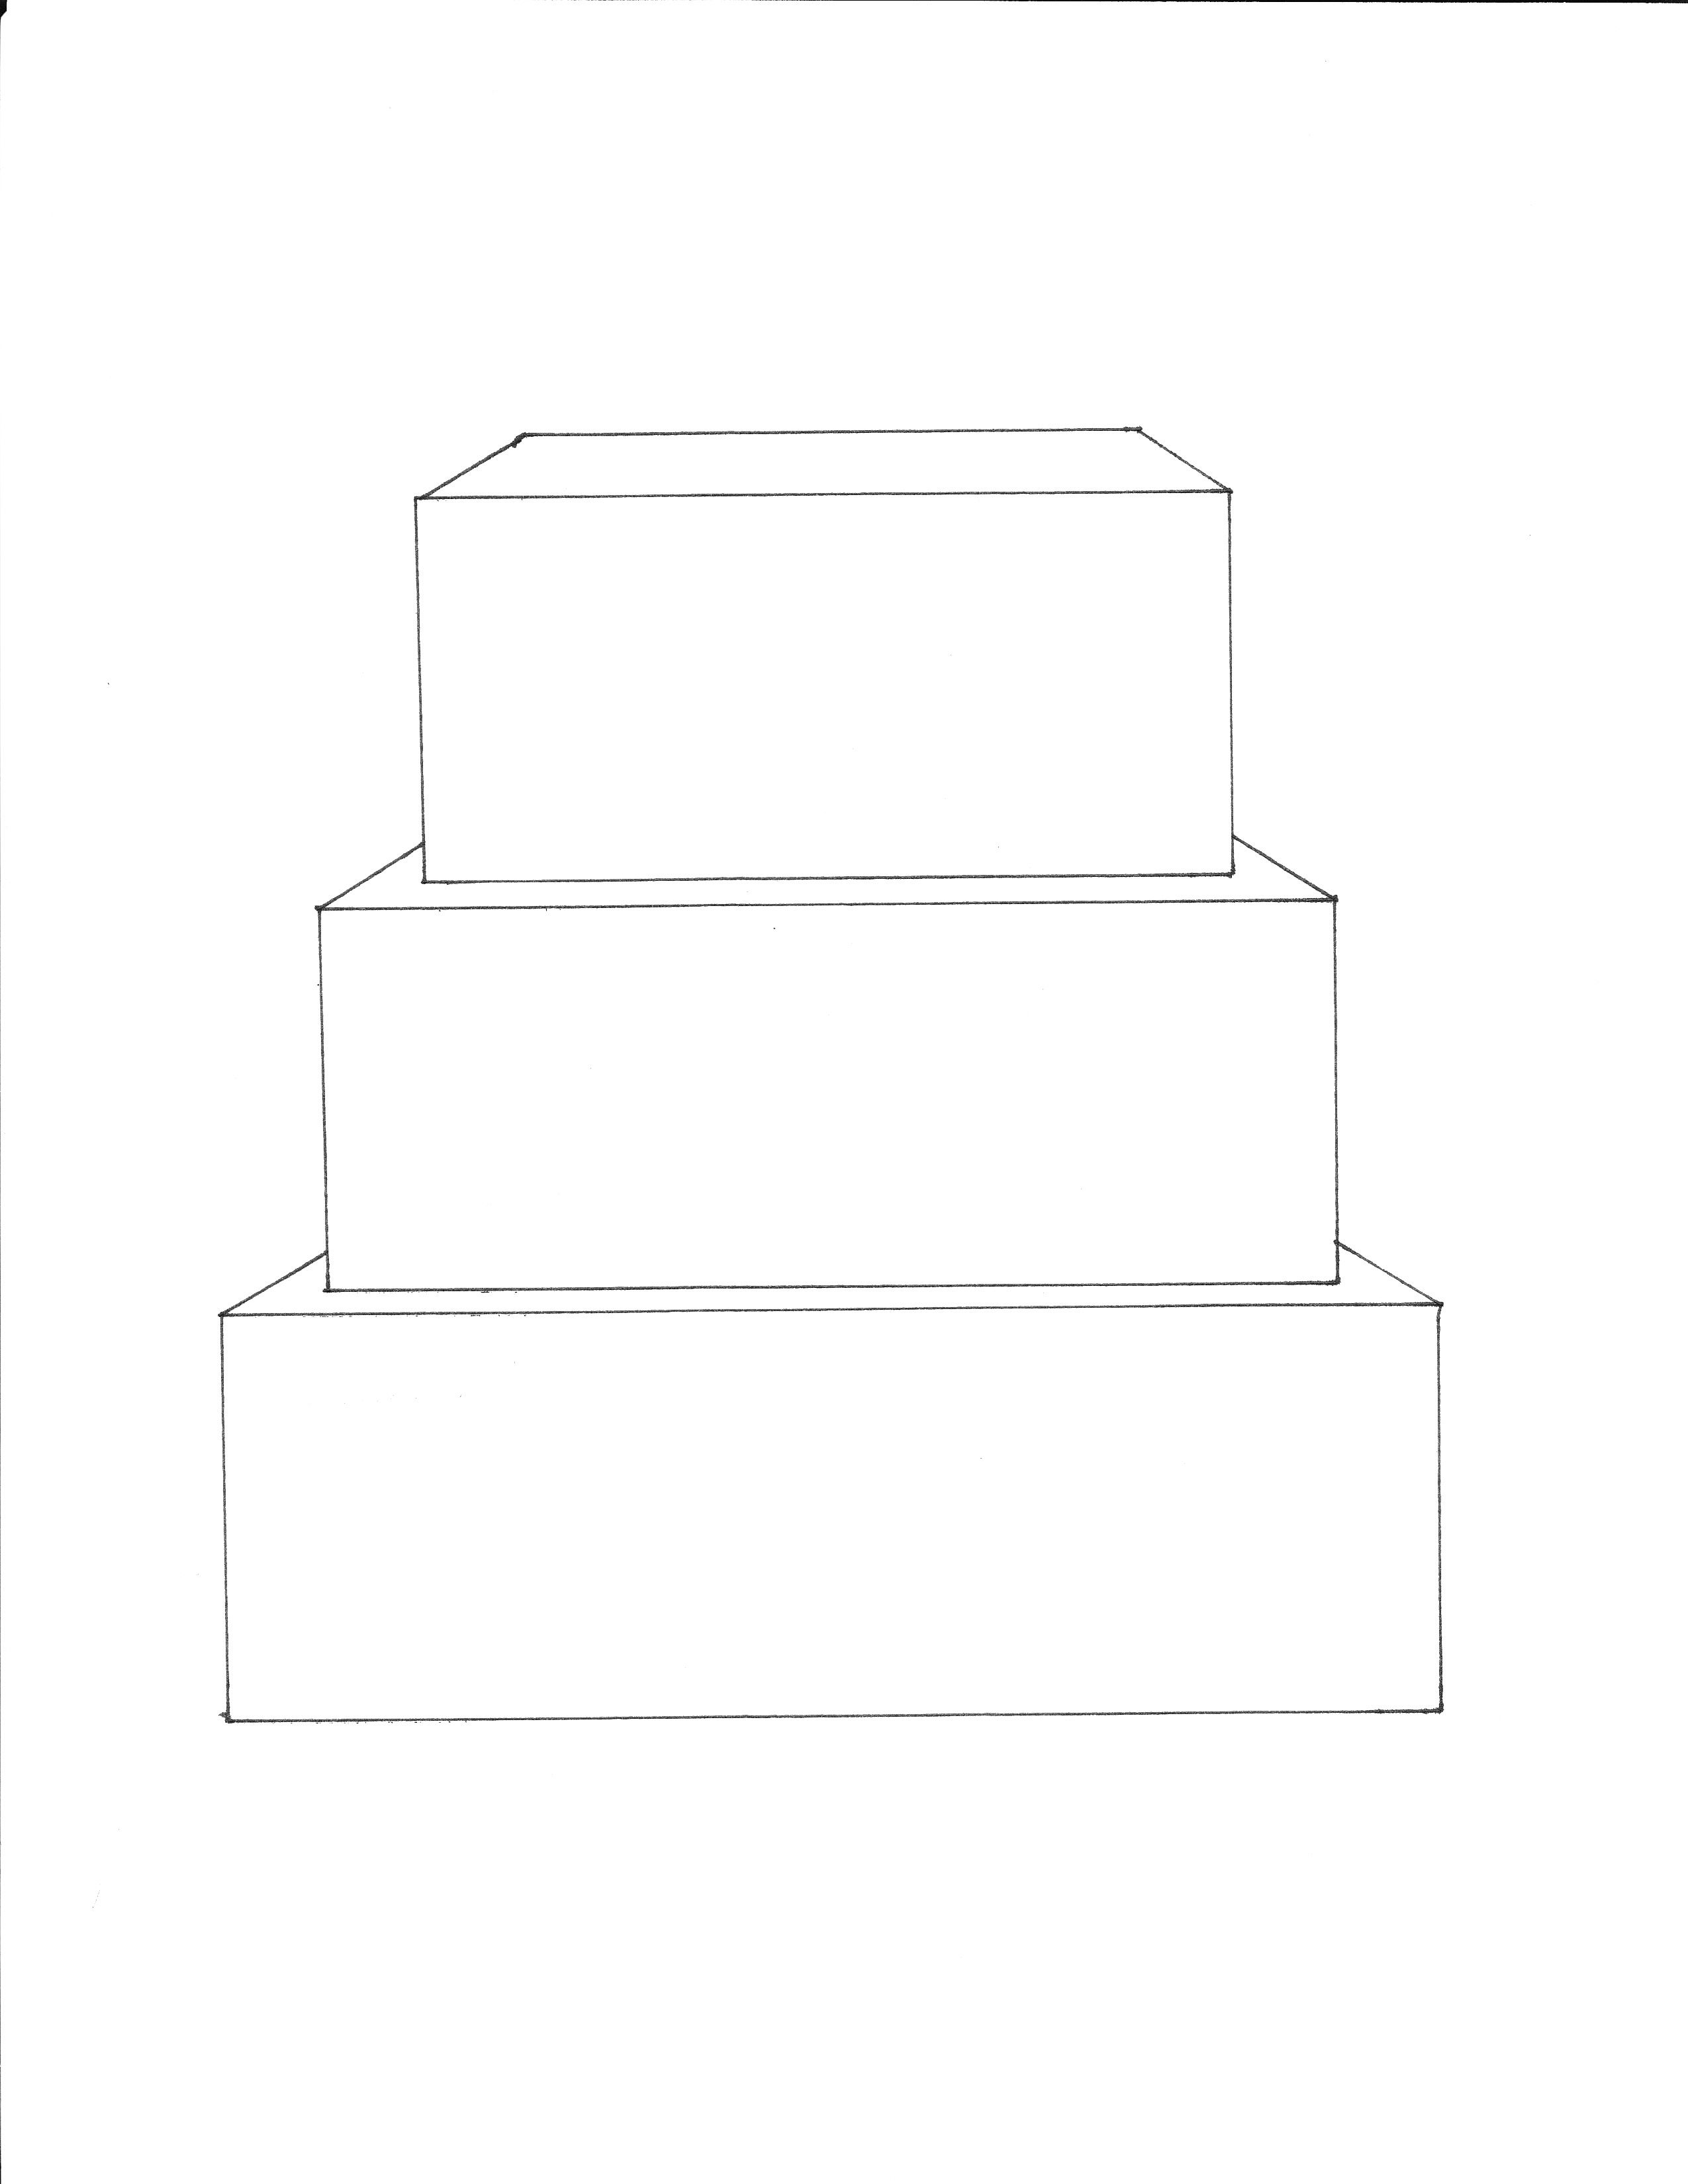 3 tier square cake template free downloadable cake templates at  facebook com